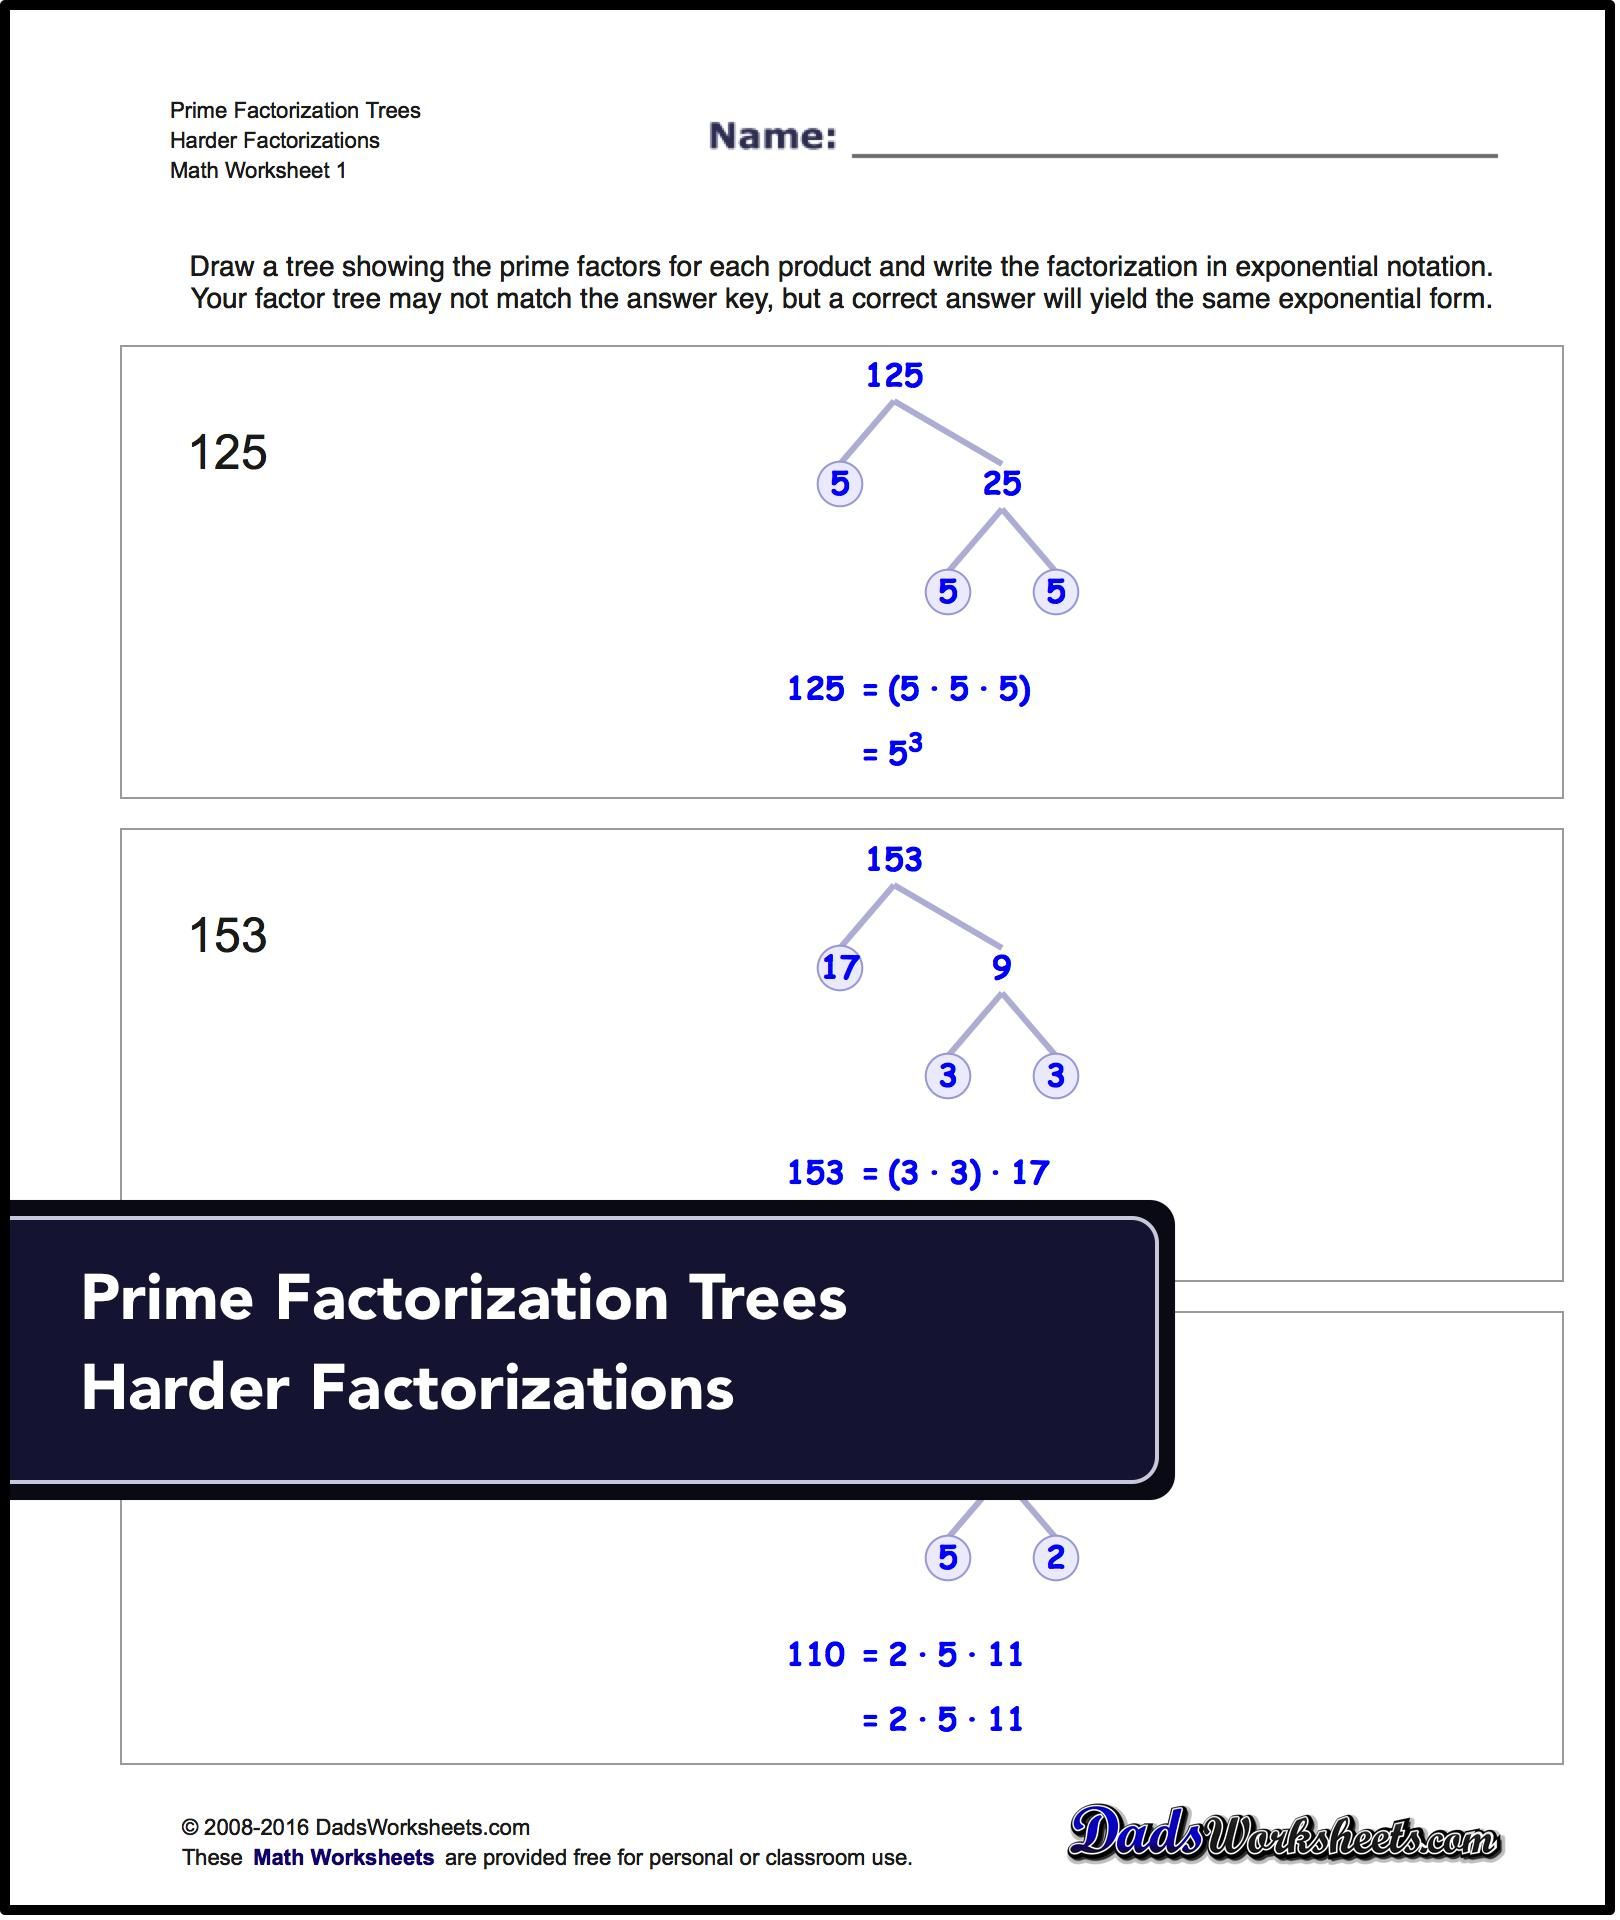 Factorization Gcd Lcm For Prime Factorization Trees